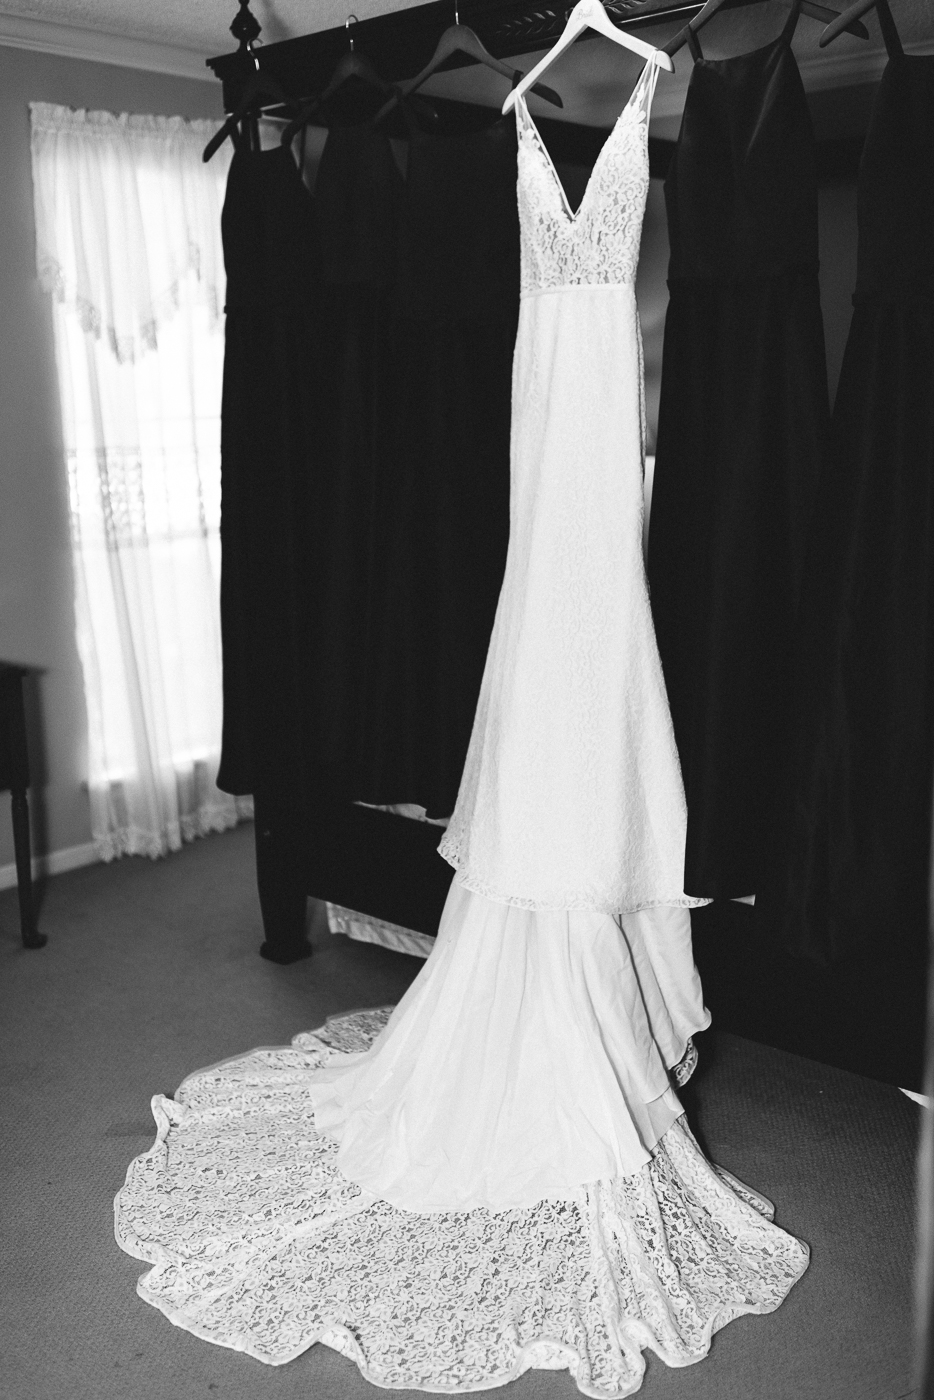 wedding gown beautiful v-neck lace train black and white